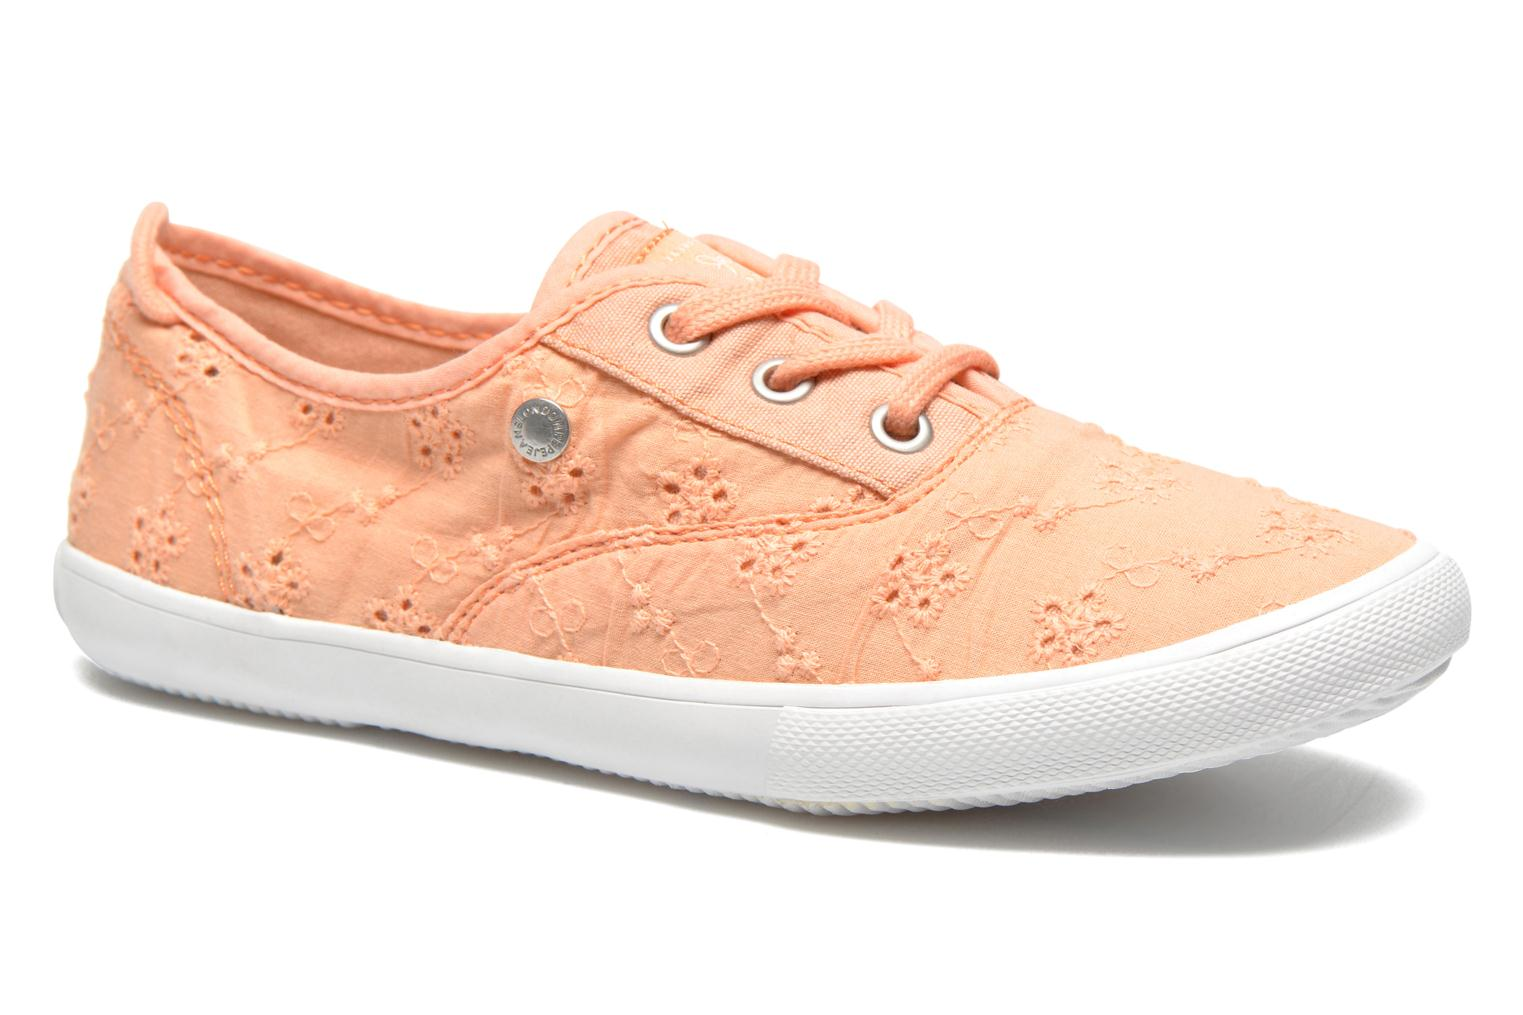 Sneakers Soho Embroidery by Pepe jeans